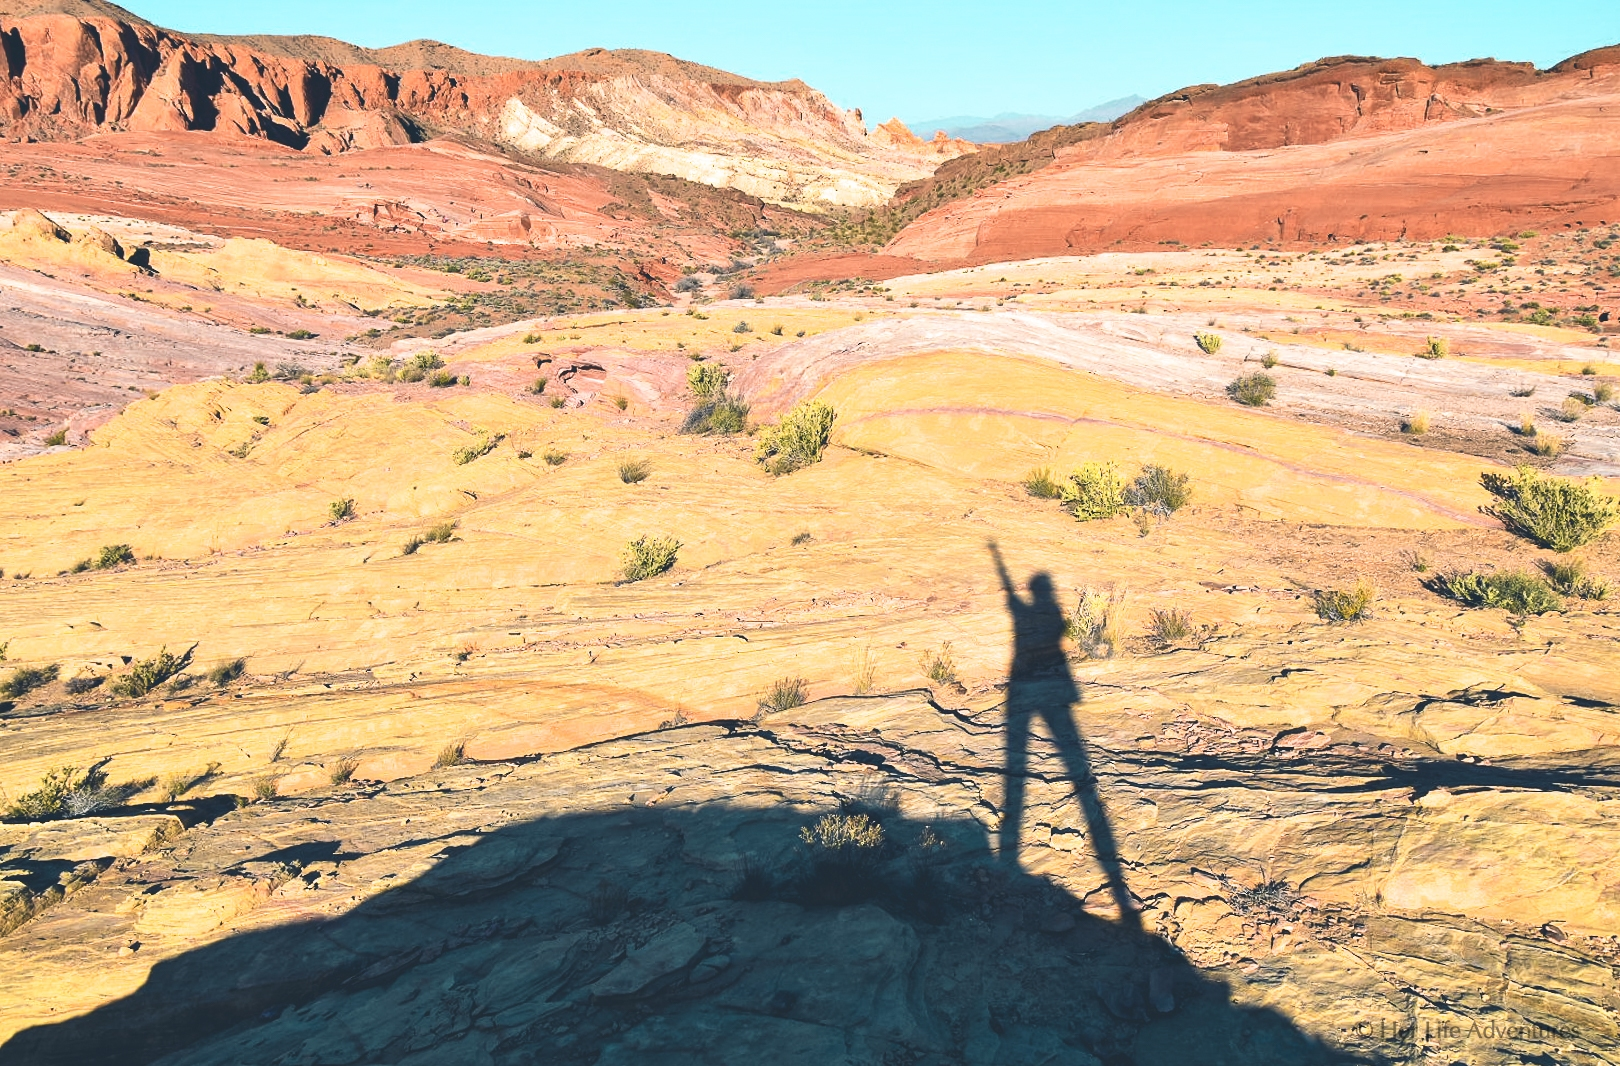 The Wave hike and more in this adventure itinerary will provide you all the information you need for your visit to Valley of Fire State Park in Nevada. The best hikes, what to do, where to stay, tours, how to get there and more! | #nevadatravel #nevadaroadtrip #valleyoffire #statepark #photos #hiking #camping #photography